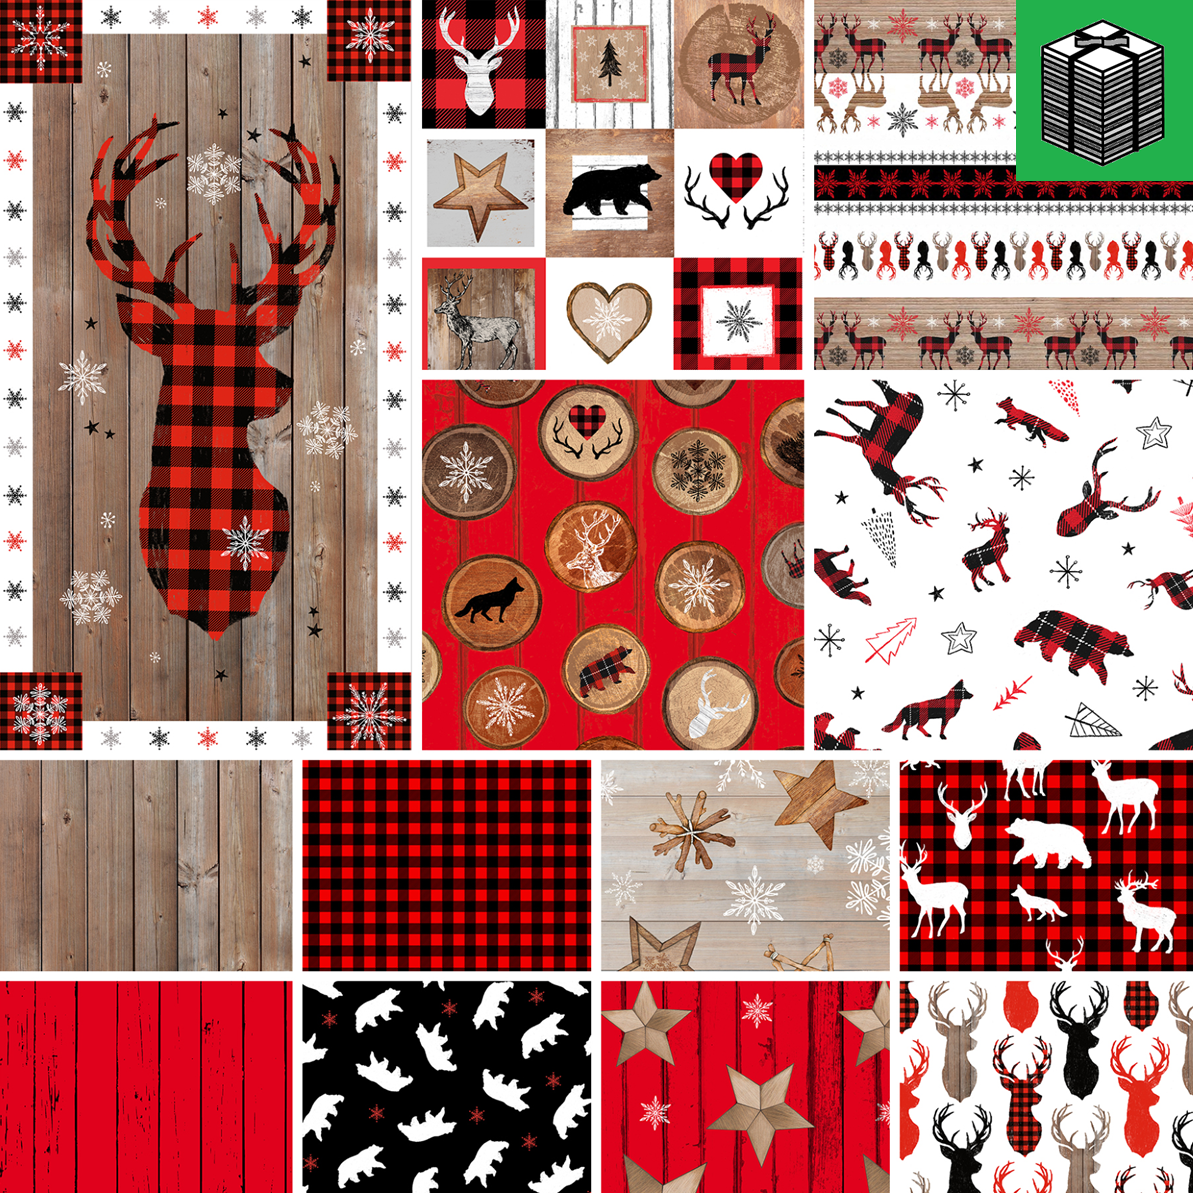 Warm Winter Wishes - 1 Panel and 12 Fat Quarters